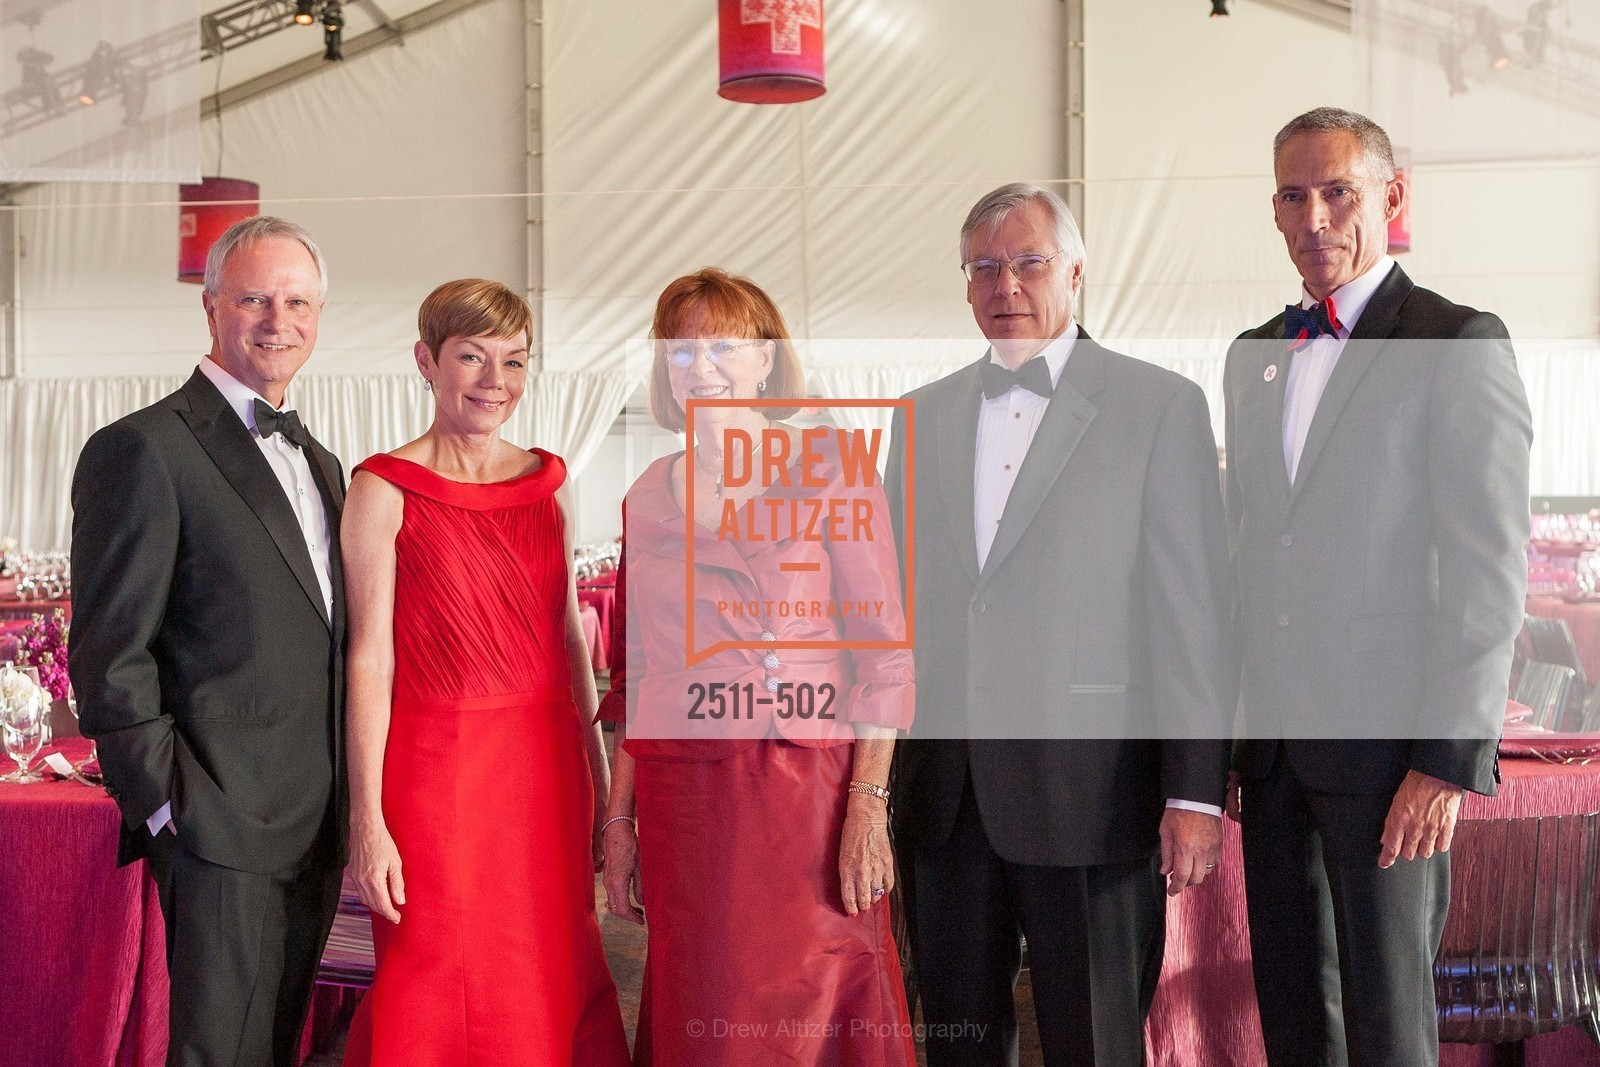 Michael Downey, Paula Downey, Mary Cranston, Roger van Craeynest, Mark Cloutier, 2014 RED CROSS Gala Honoring Paula Downey as the American Red Cross Bay Area Chapter Humanitarian CEO of the Year, US. Treasure Island (The Great Lawn), April 5th, 2014,Drew Altizer, Drew Altizer Photography, full-service agency, private events, San Francisco photographer, photographer california